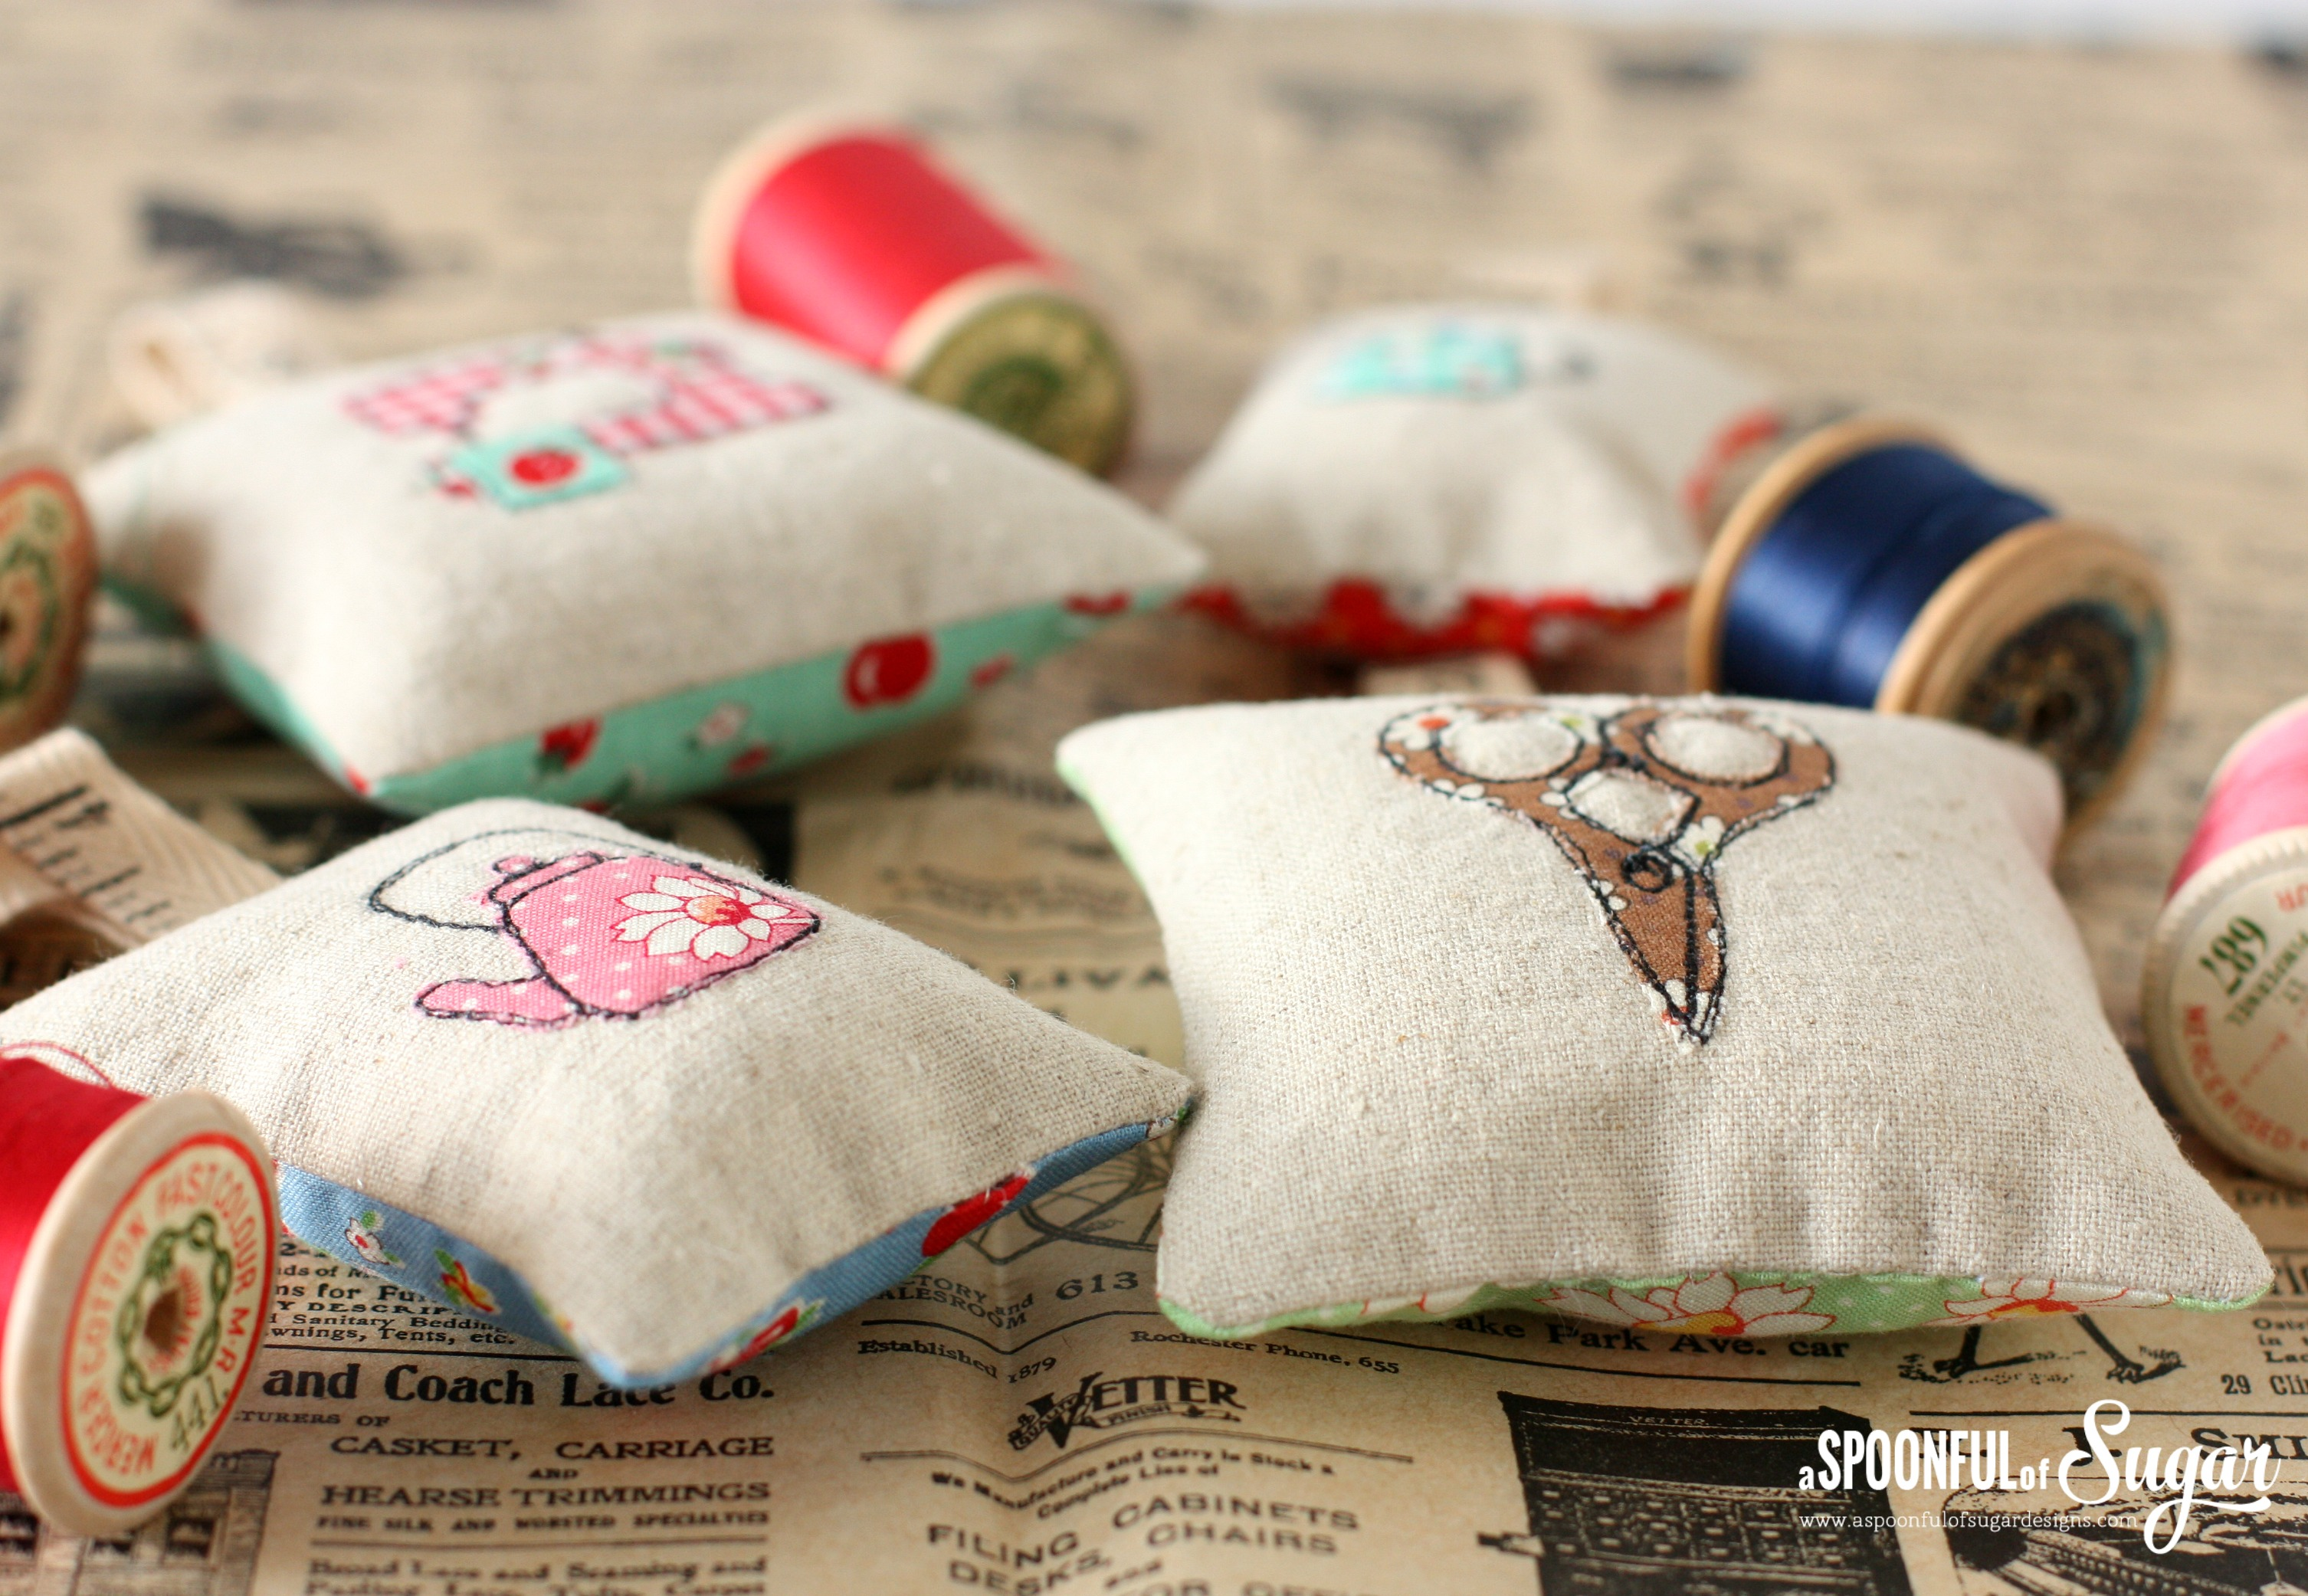 Pincushions from Sew Illustrated, 35 Charming Fabric and Thread Designs, by Minki Kim and Kristin Esser